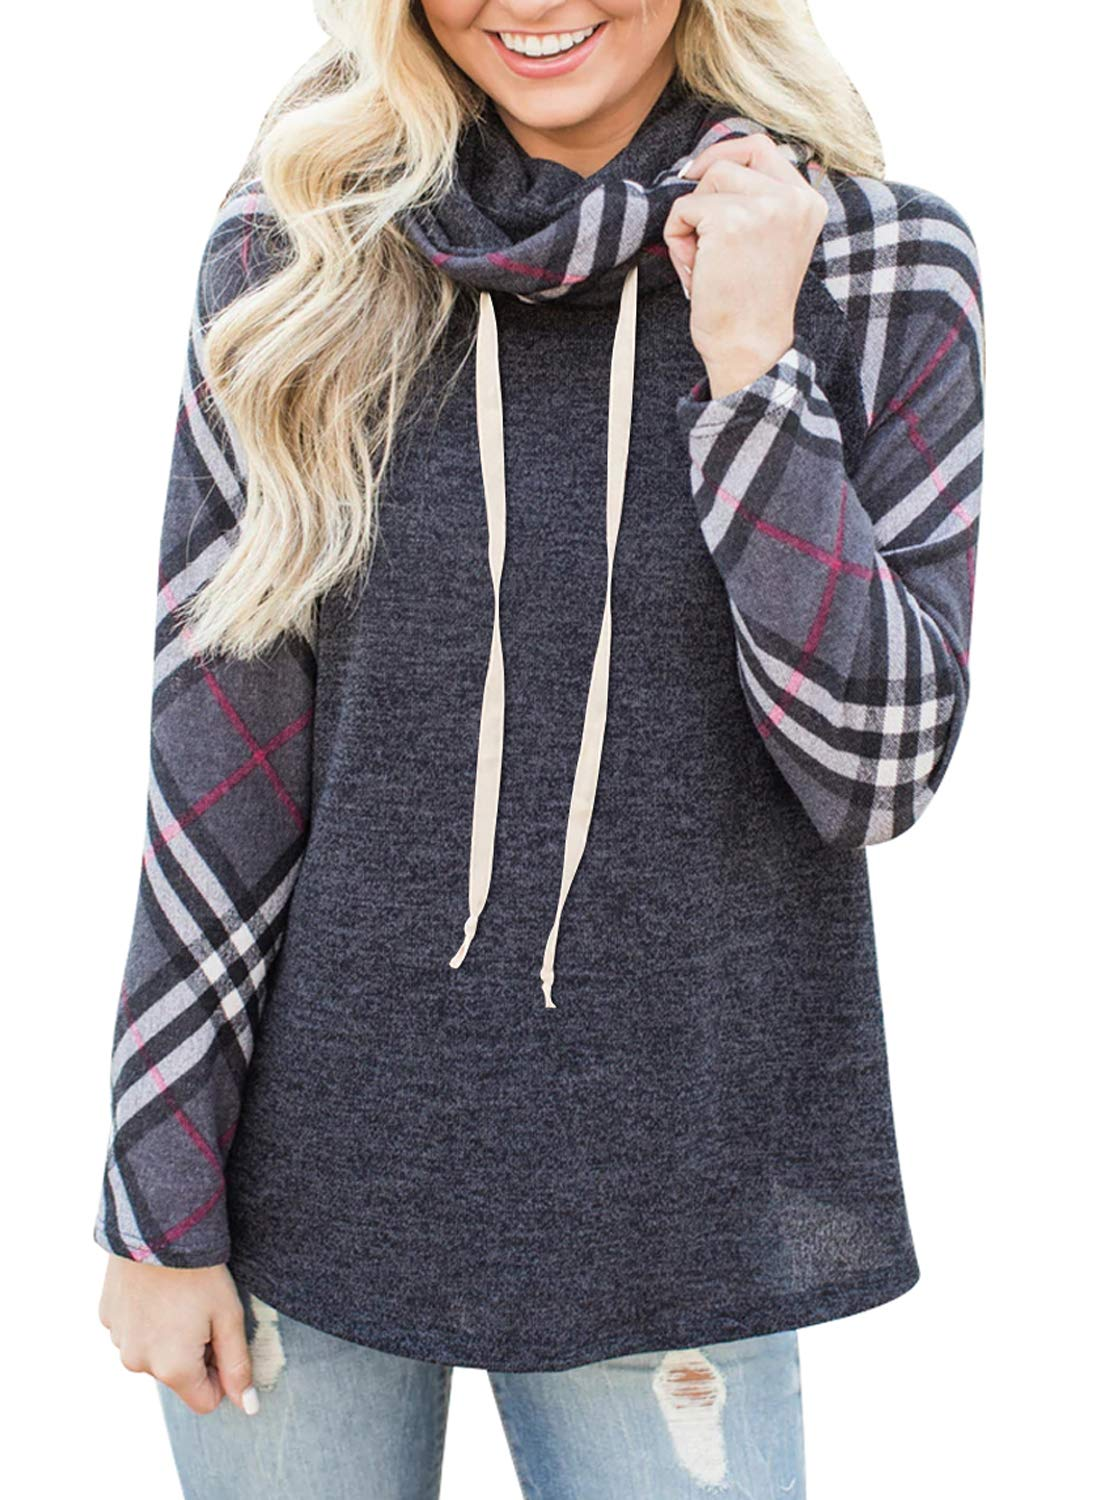 Womens Long Sleeve Cowl Neck Plaid Sweatshirts Raglan Pullover Shirts Fall Lightweight Tunic Tops Casual Blouse Black XL 16 18